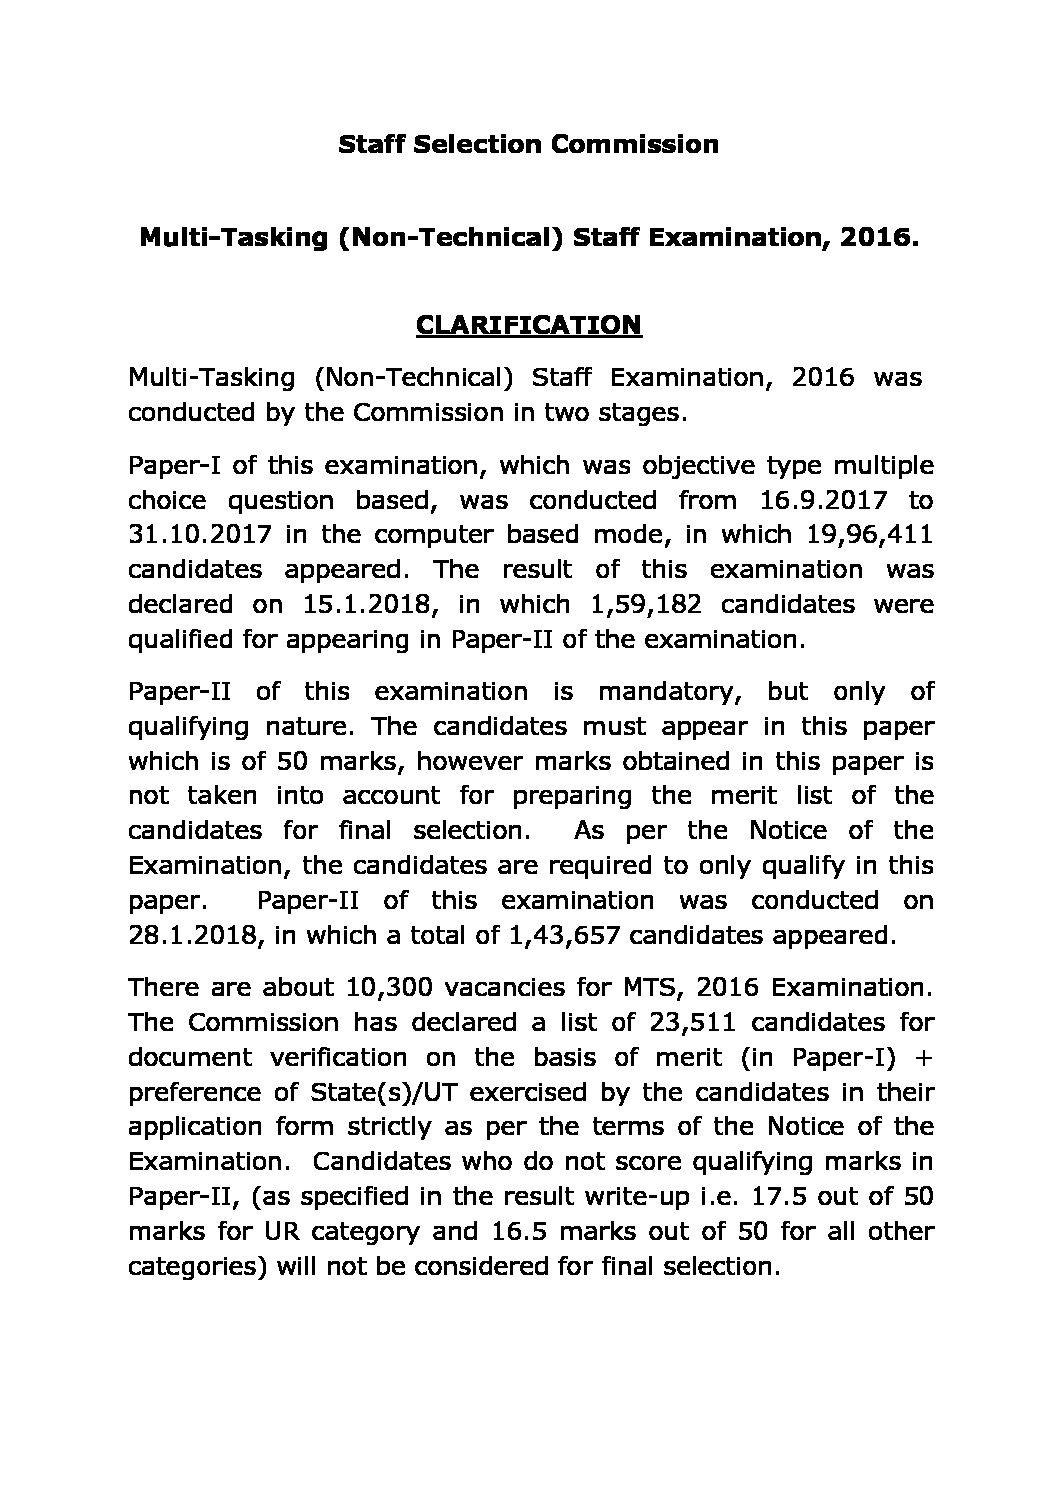 CLARIFICATION FOR ADVANCED ACTION TAKEN BY COMMISSION FOR DV FOR SSC MTS-2016